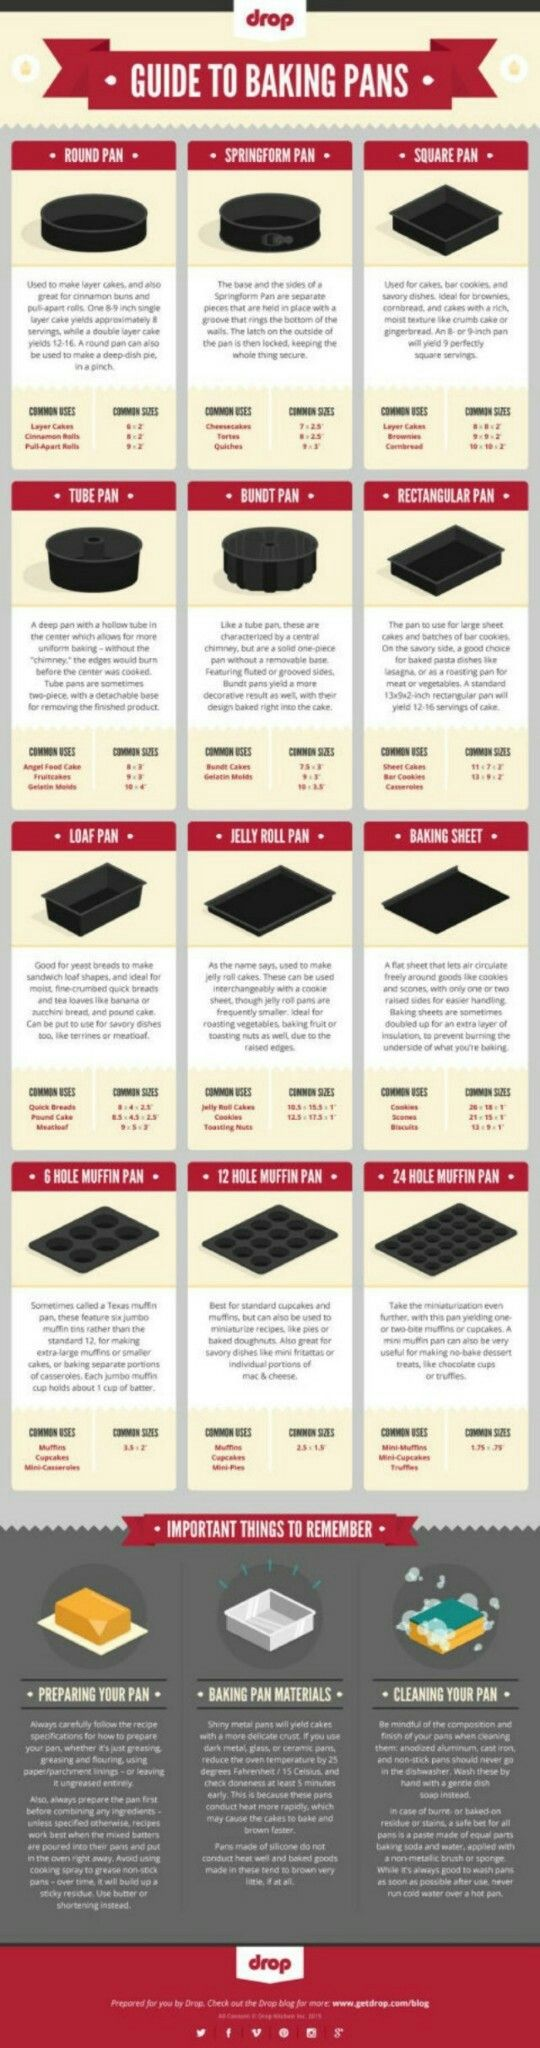 Guide to baking pans